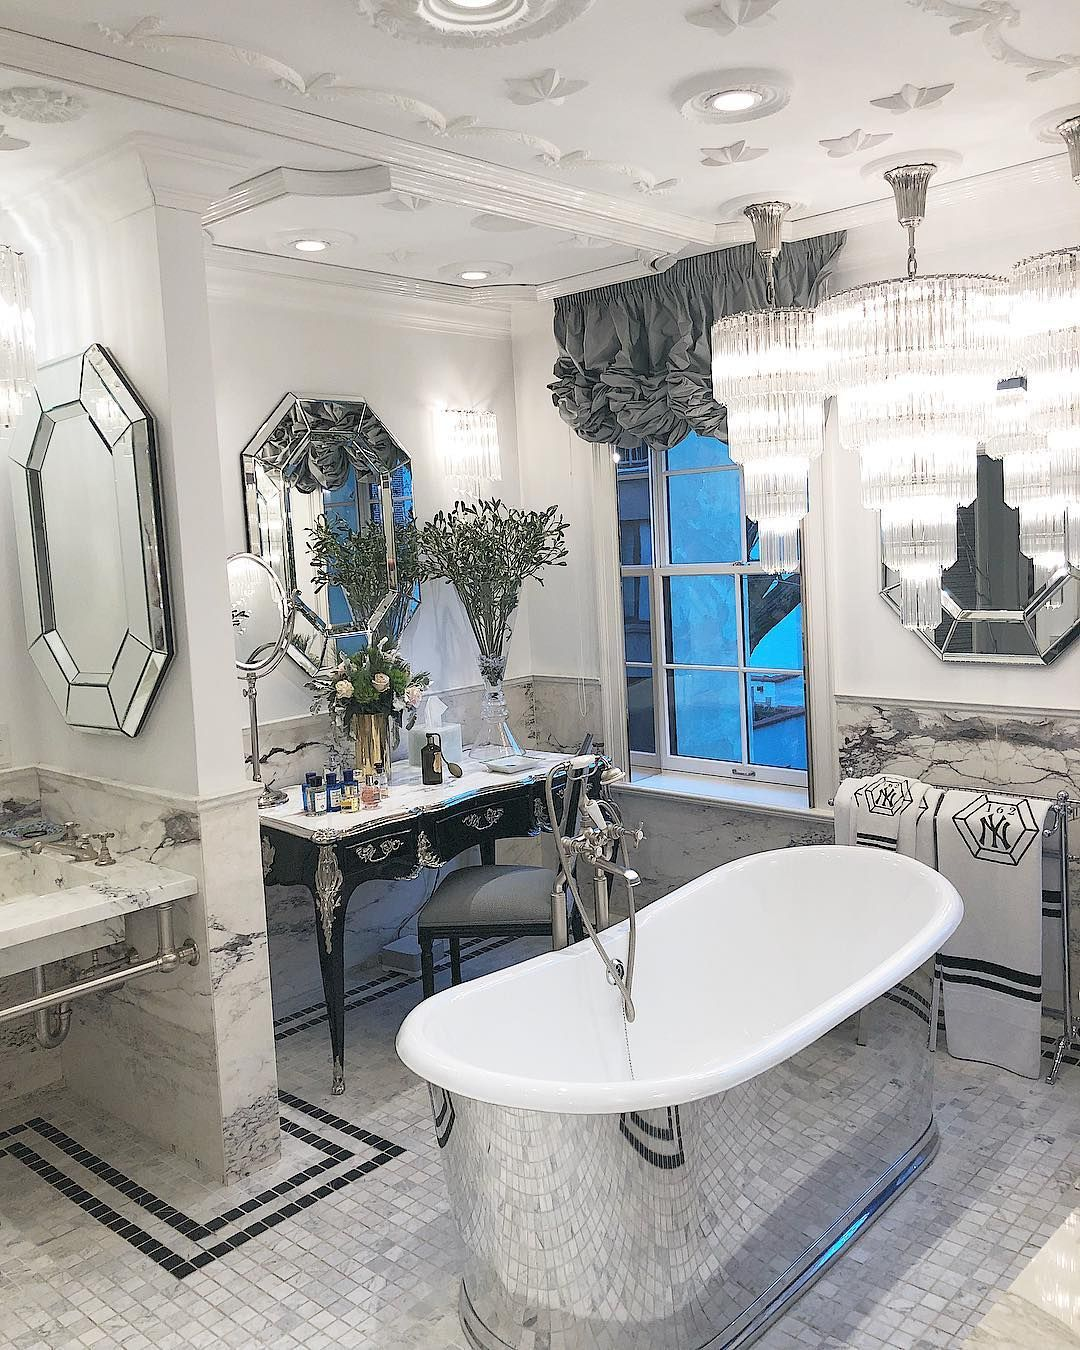 e866abe15a GOOD MORNING NYC | Interior design w 2019 | Bathroom, Bathtub i ...